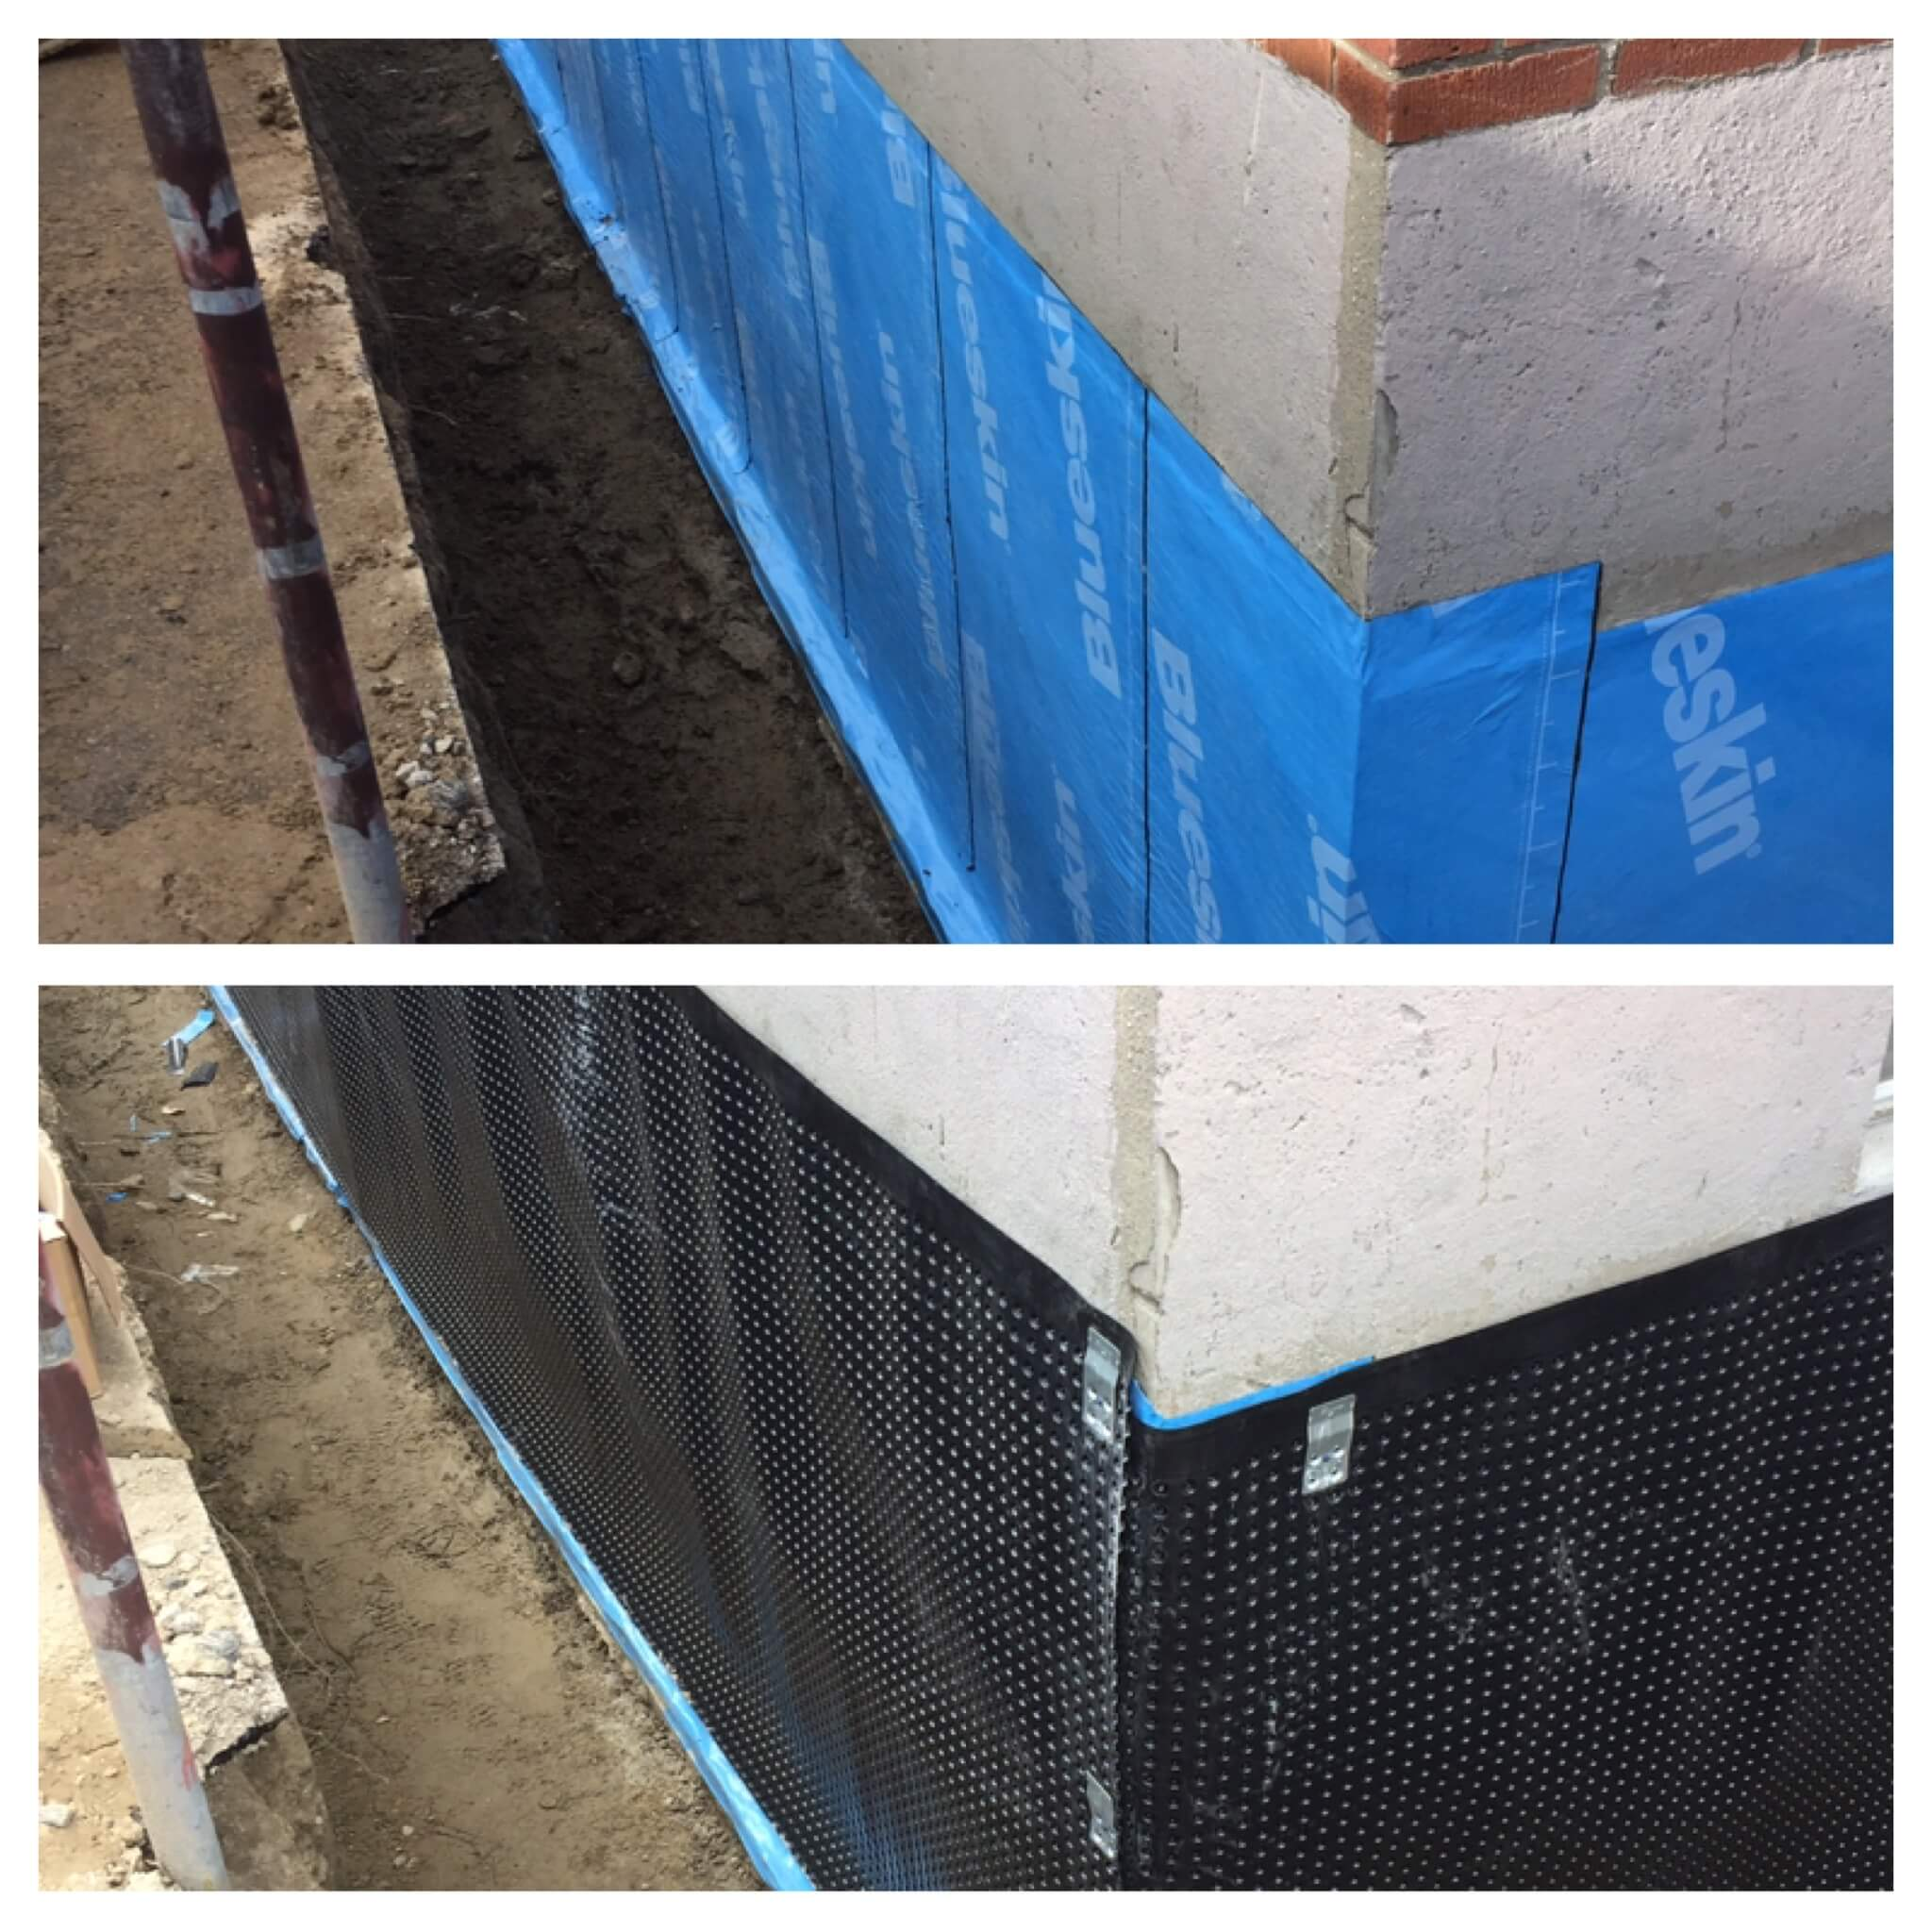 Basement-Waterproofing-Company-Scarborough-Citadel-Dr-4